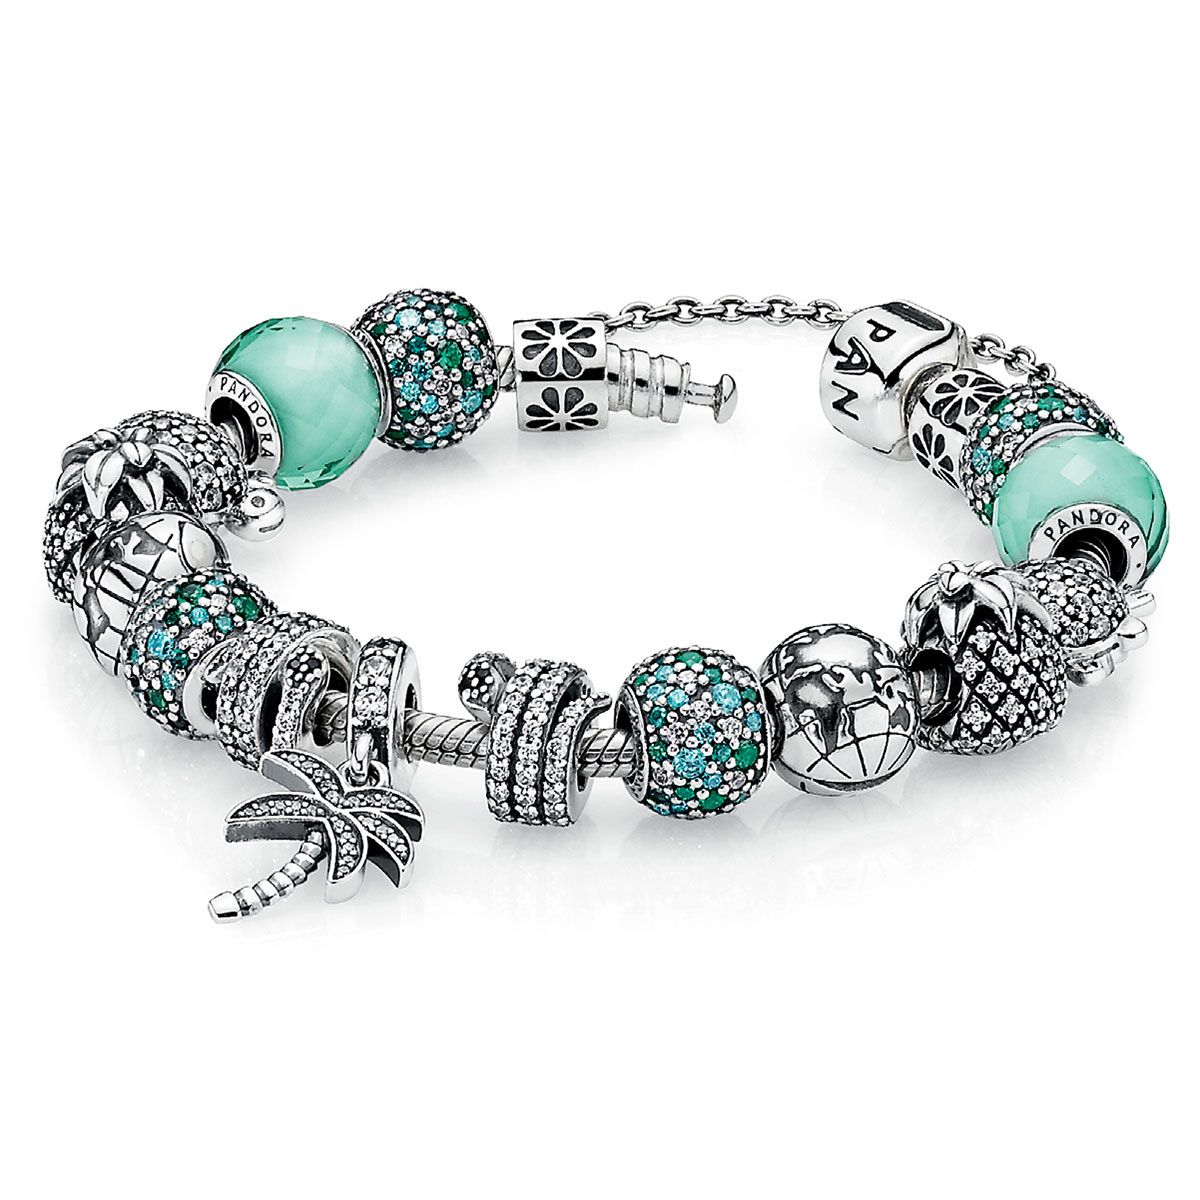 PANDORA Caribbean Cool Charm Bracelet - I can practically ...